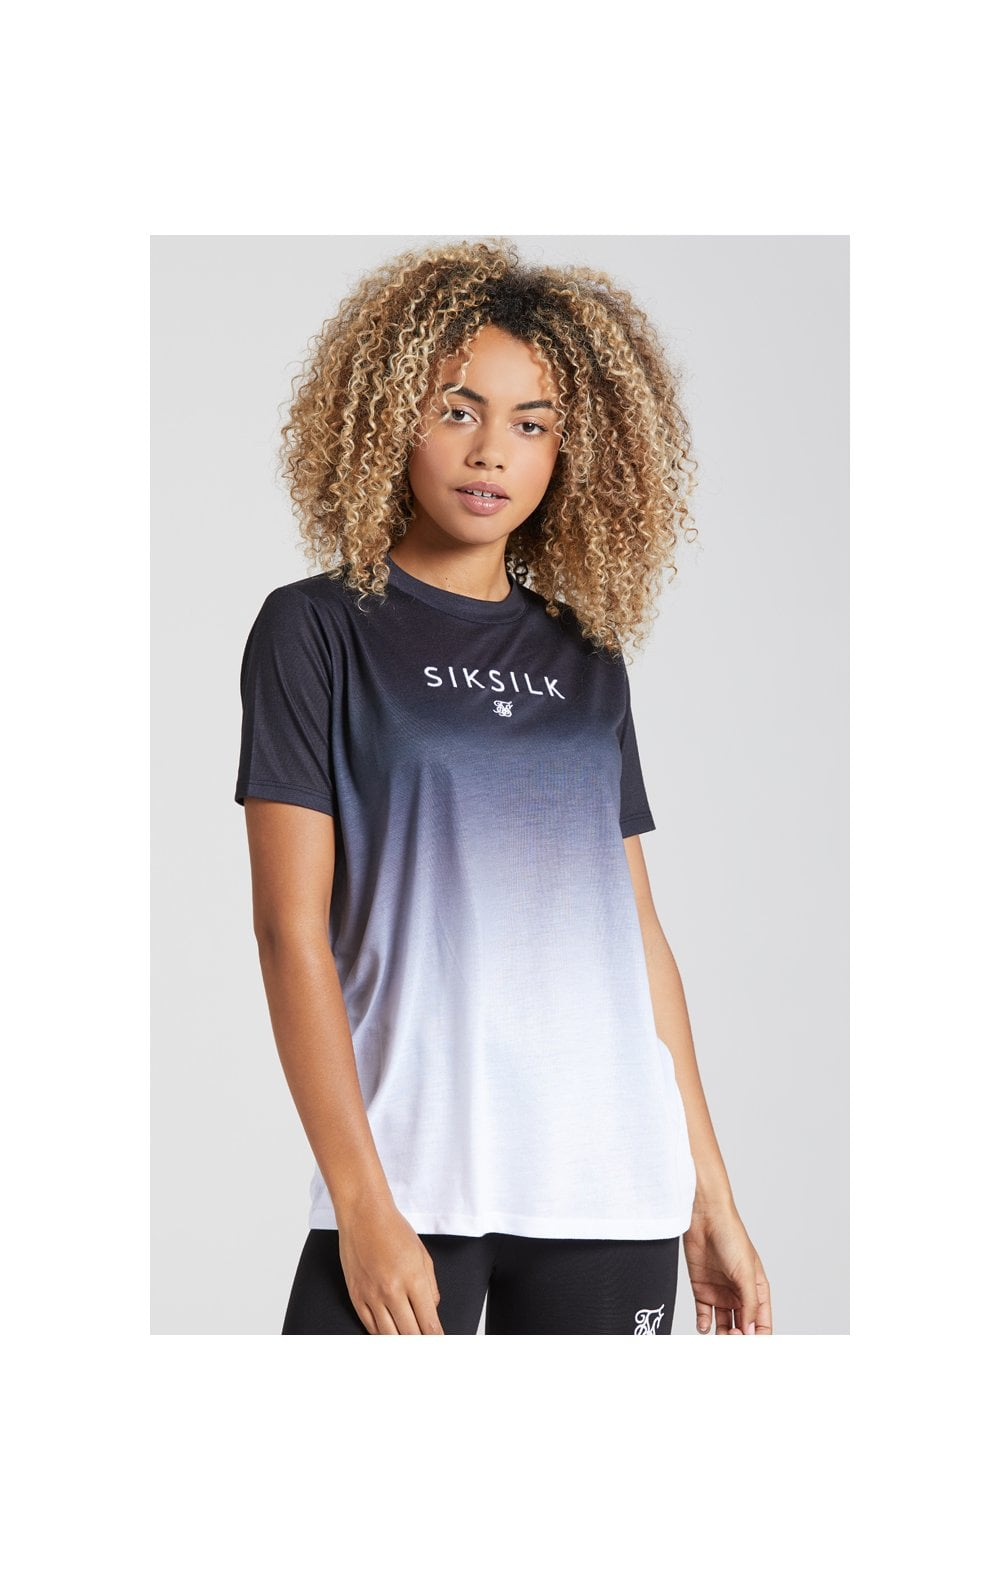 Load image into Gallery viewer, SikSilk Fade Logo Boyfriend Tee - Black & White (1)